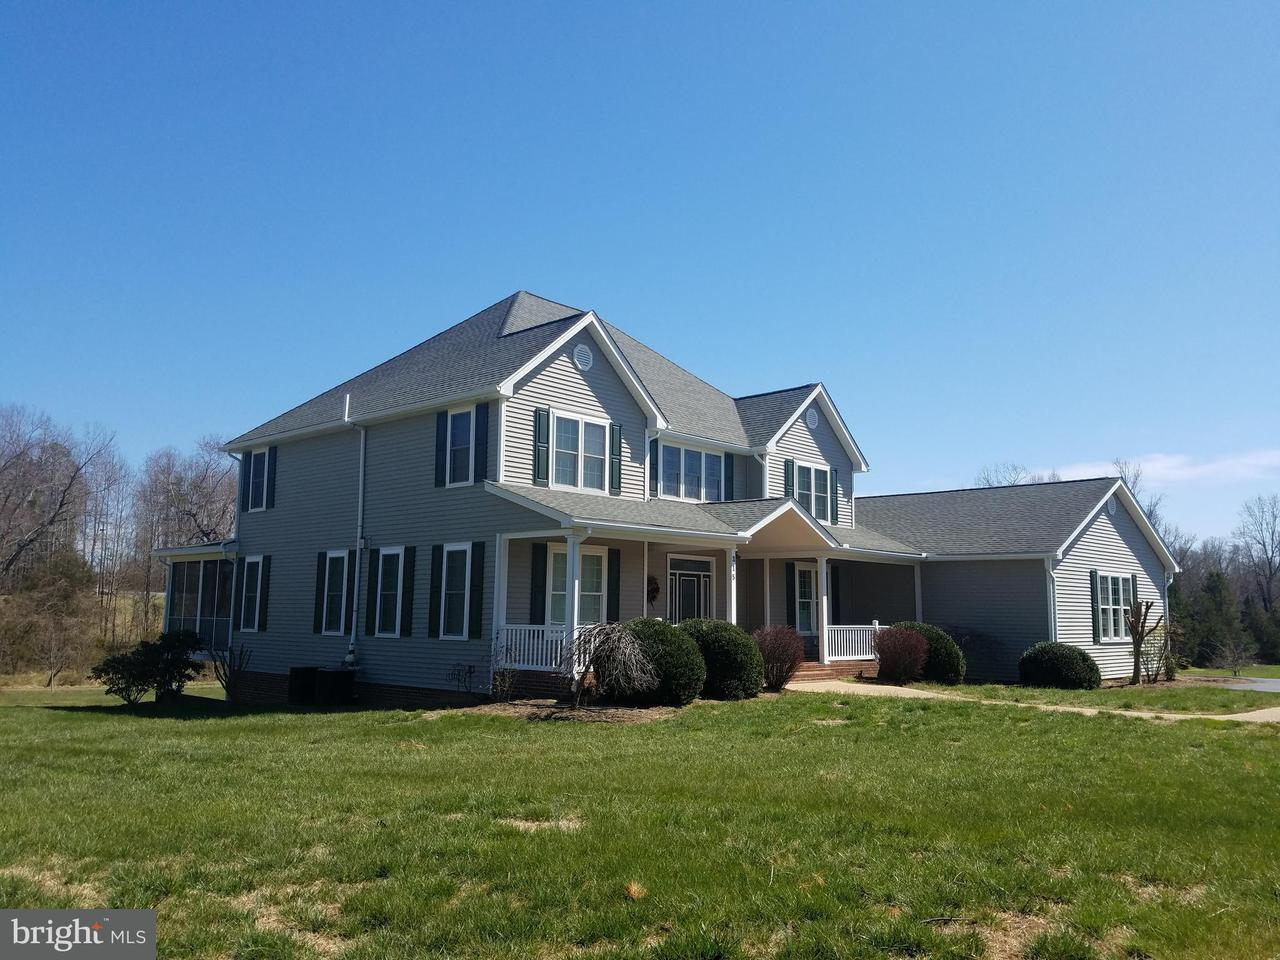 Single Family Home for Sale at 315 Club Road 315 Club Road Louisa, Virginia 23093 United States